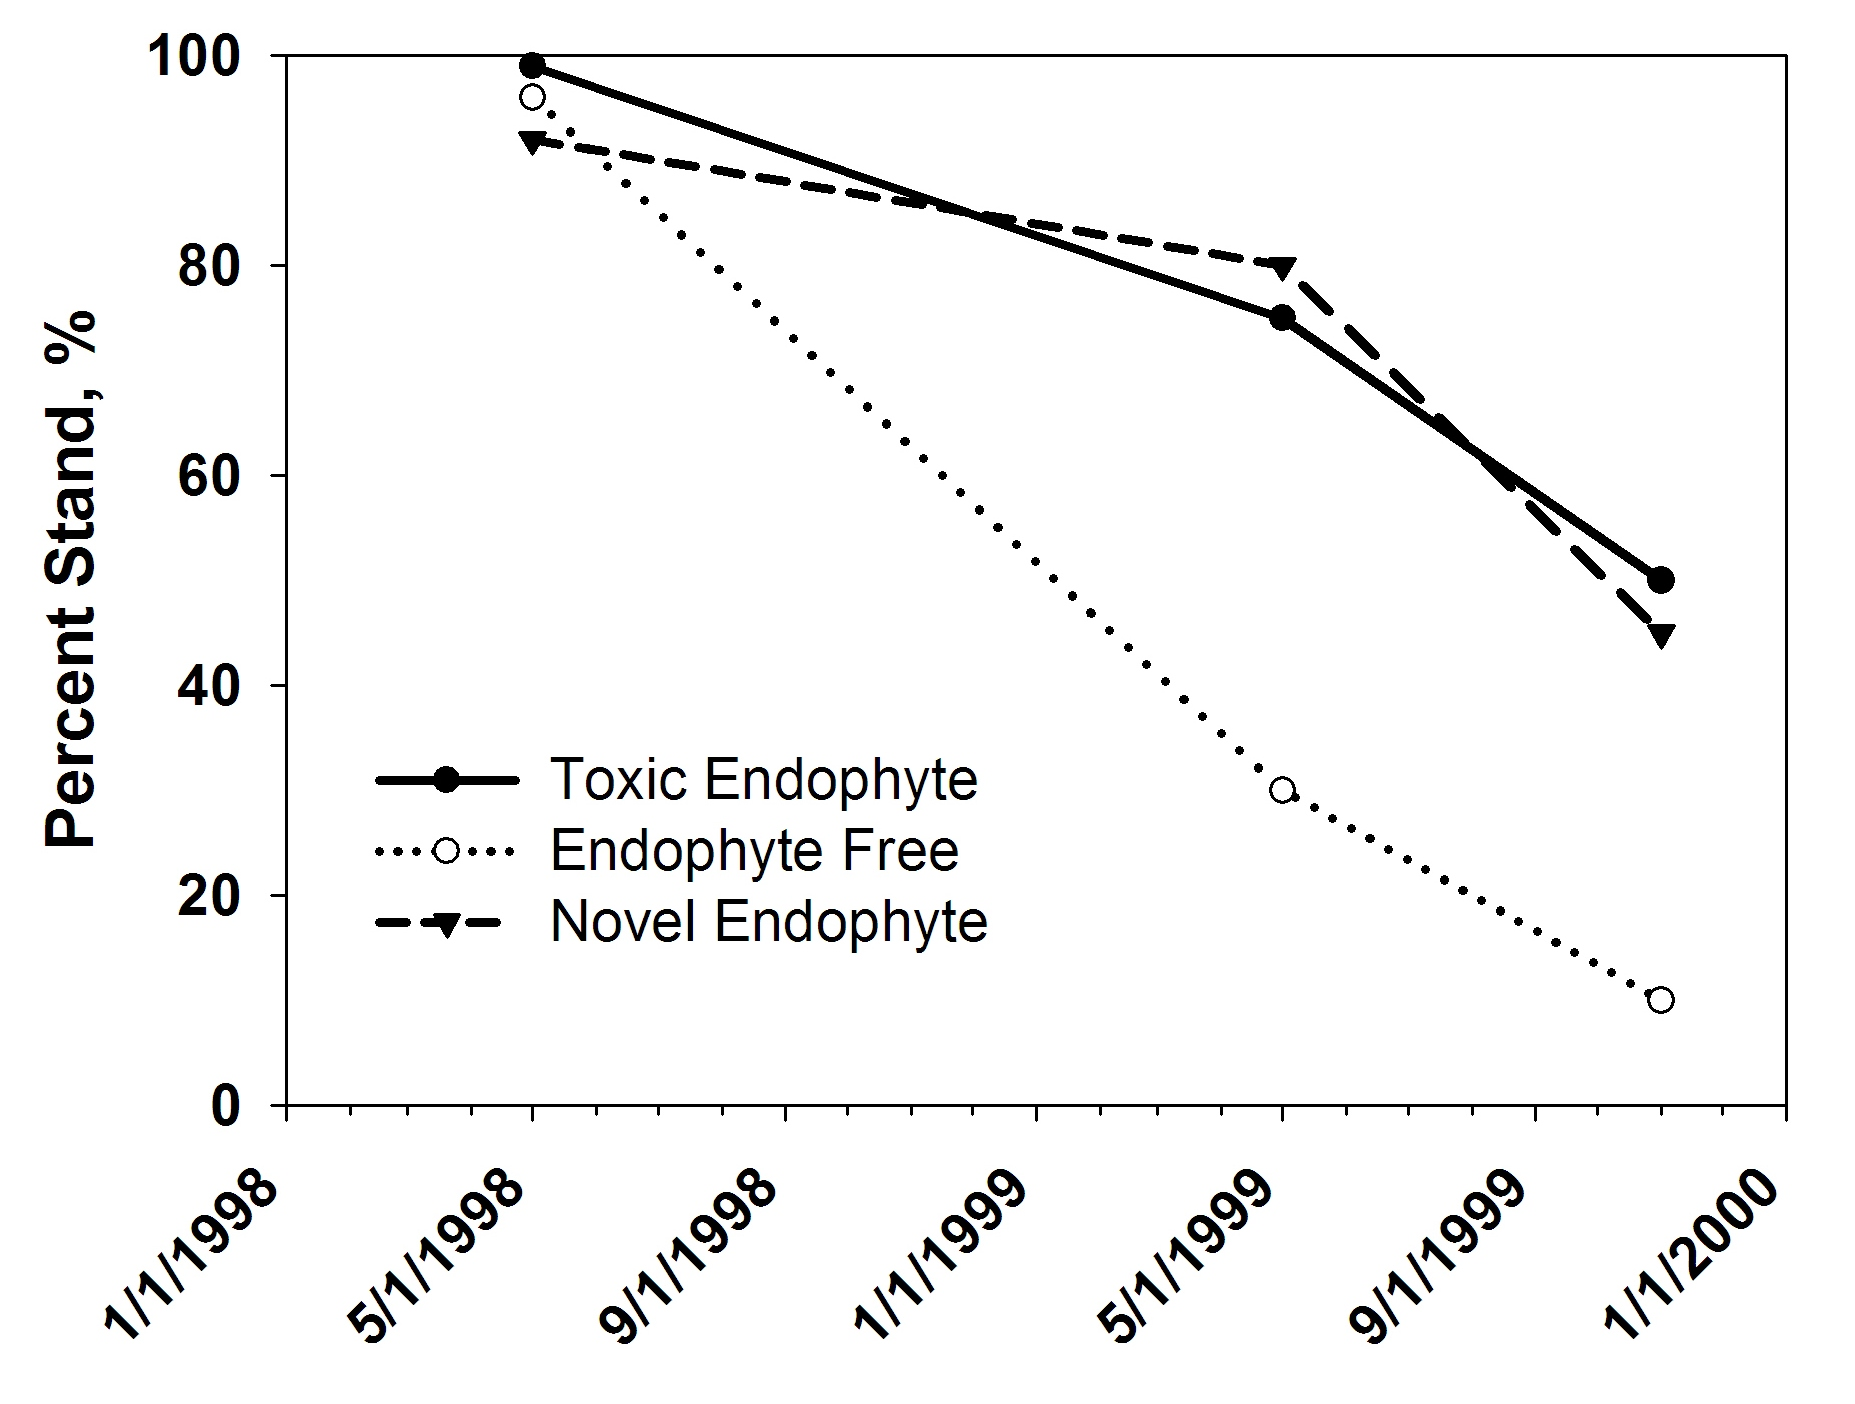 Figure 2. Stand persistence of novel endophyte-infected (Jesup MaxQ), toxic endophyte-infected, and endophyte- free tall fescue in bermudagrass sod after two years of close grazing near Eatonton, Ga. (Bouton et al., 2000).